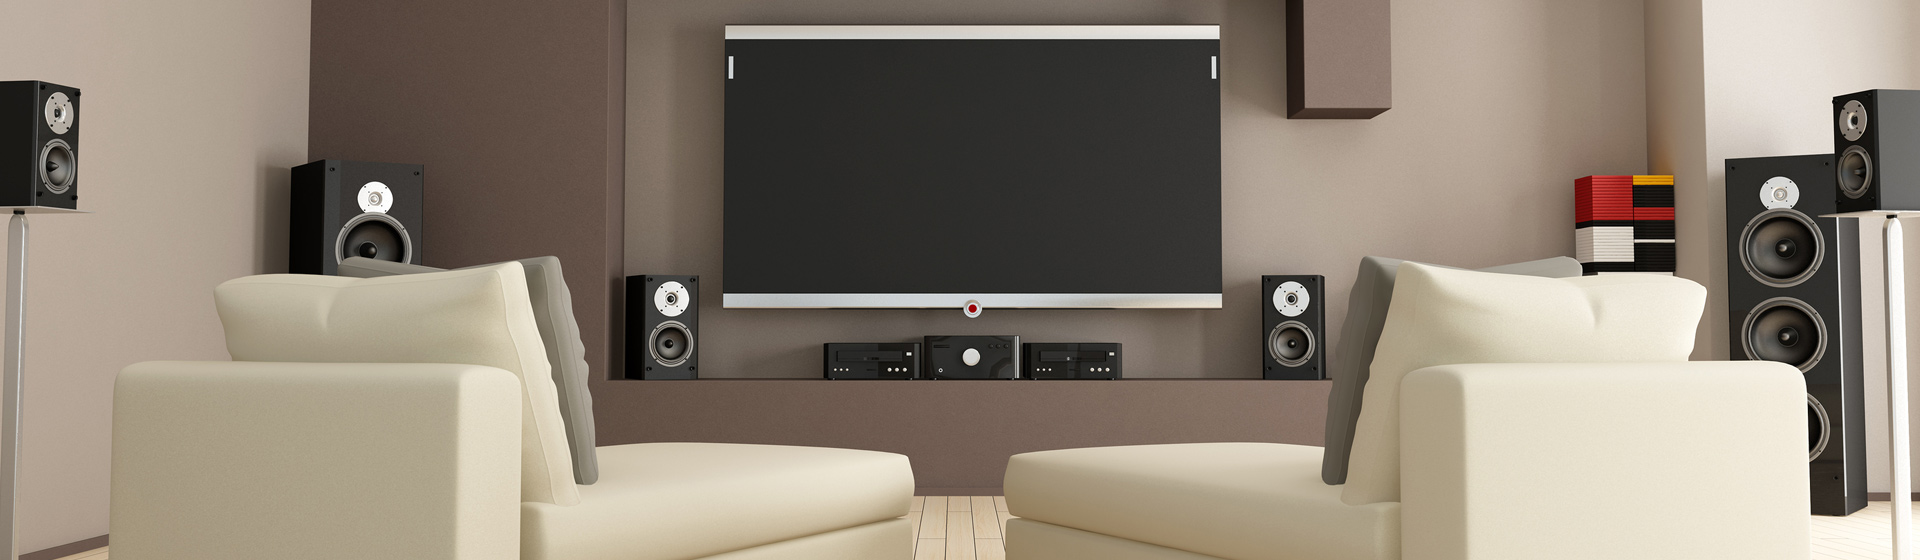 Home Theater Installation | Tampa Bay | High Definition Audio Video, Inc.